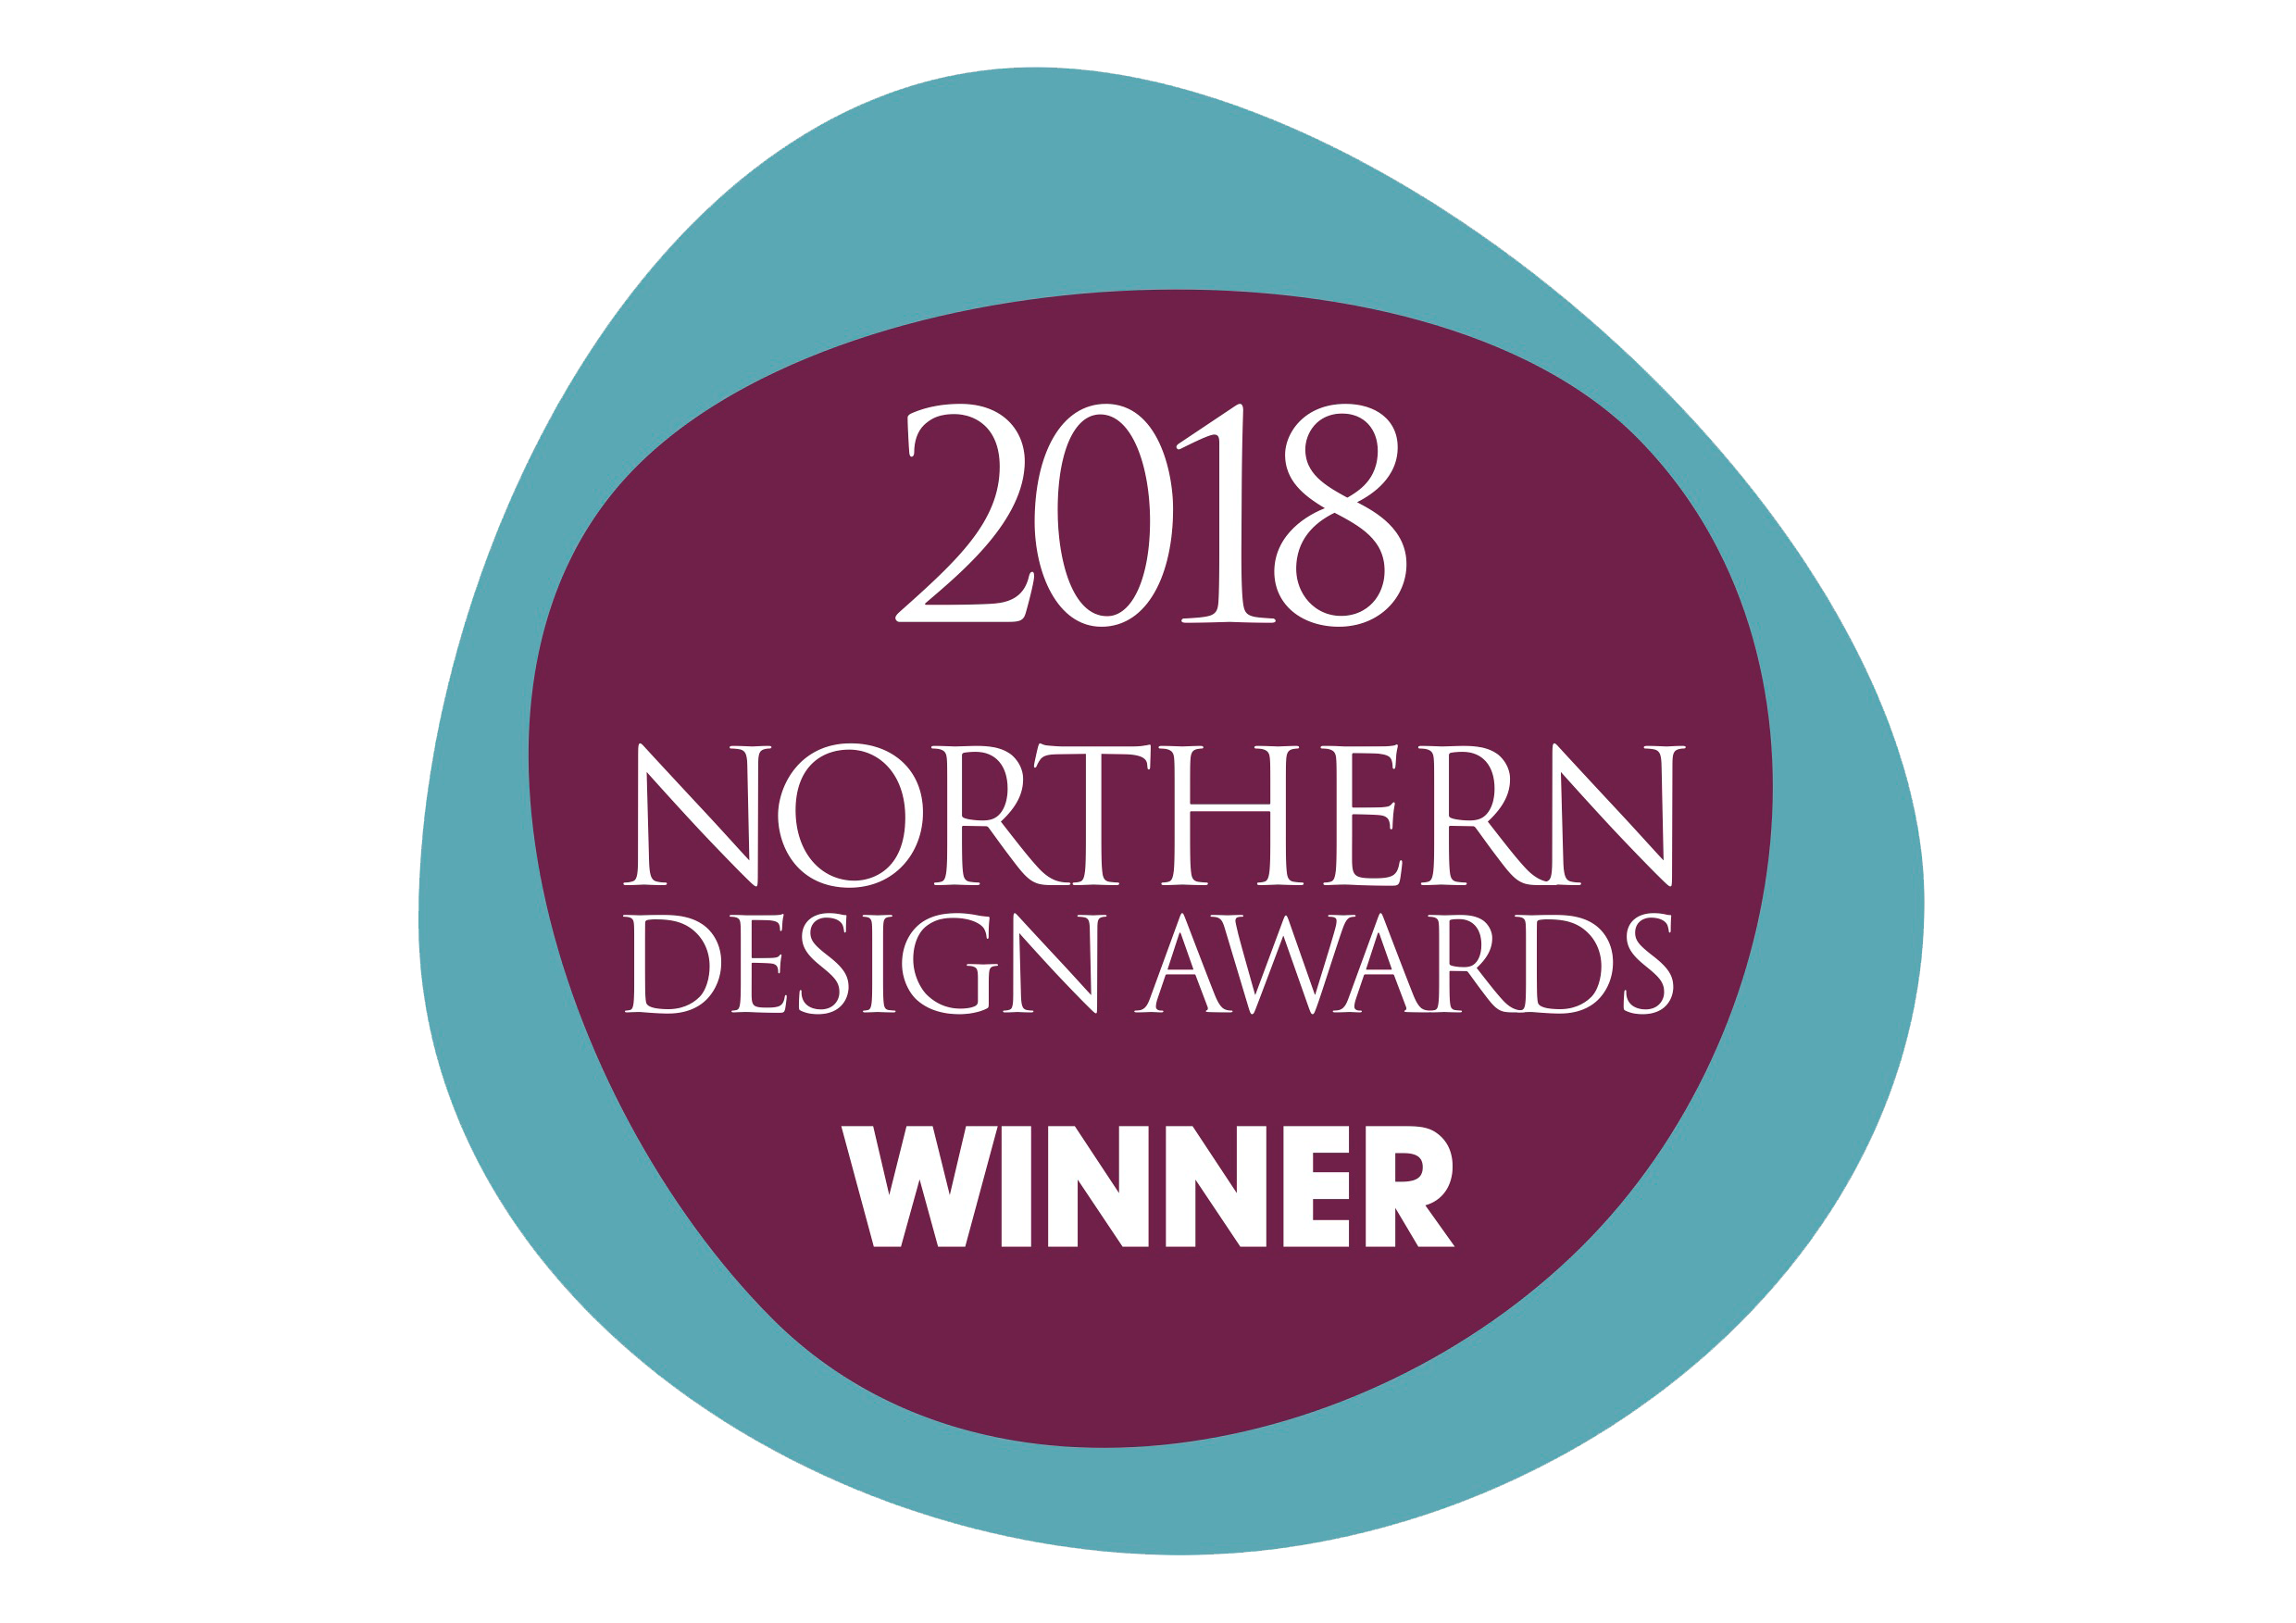 Lost & Found Leeds Club - Northern Design Award Winner 2018 - Best Restaurant & Bar Design Award